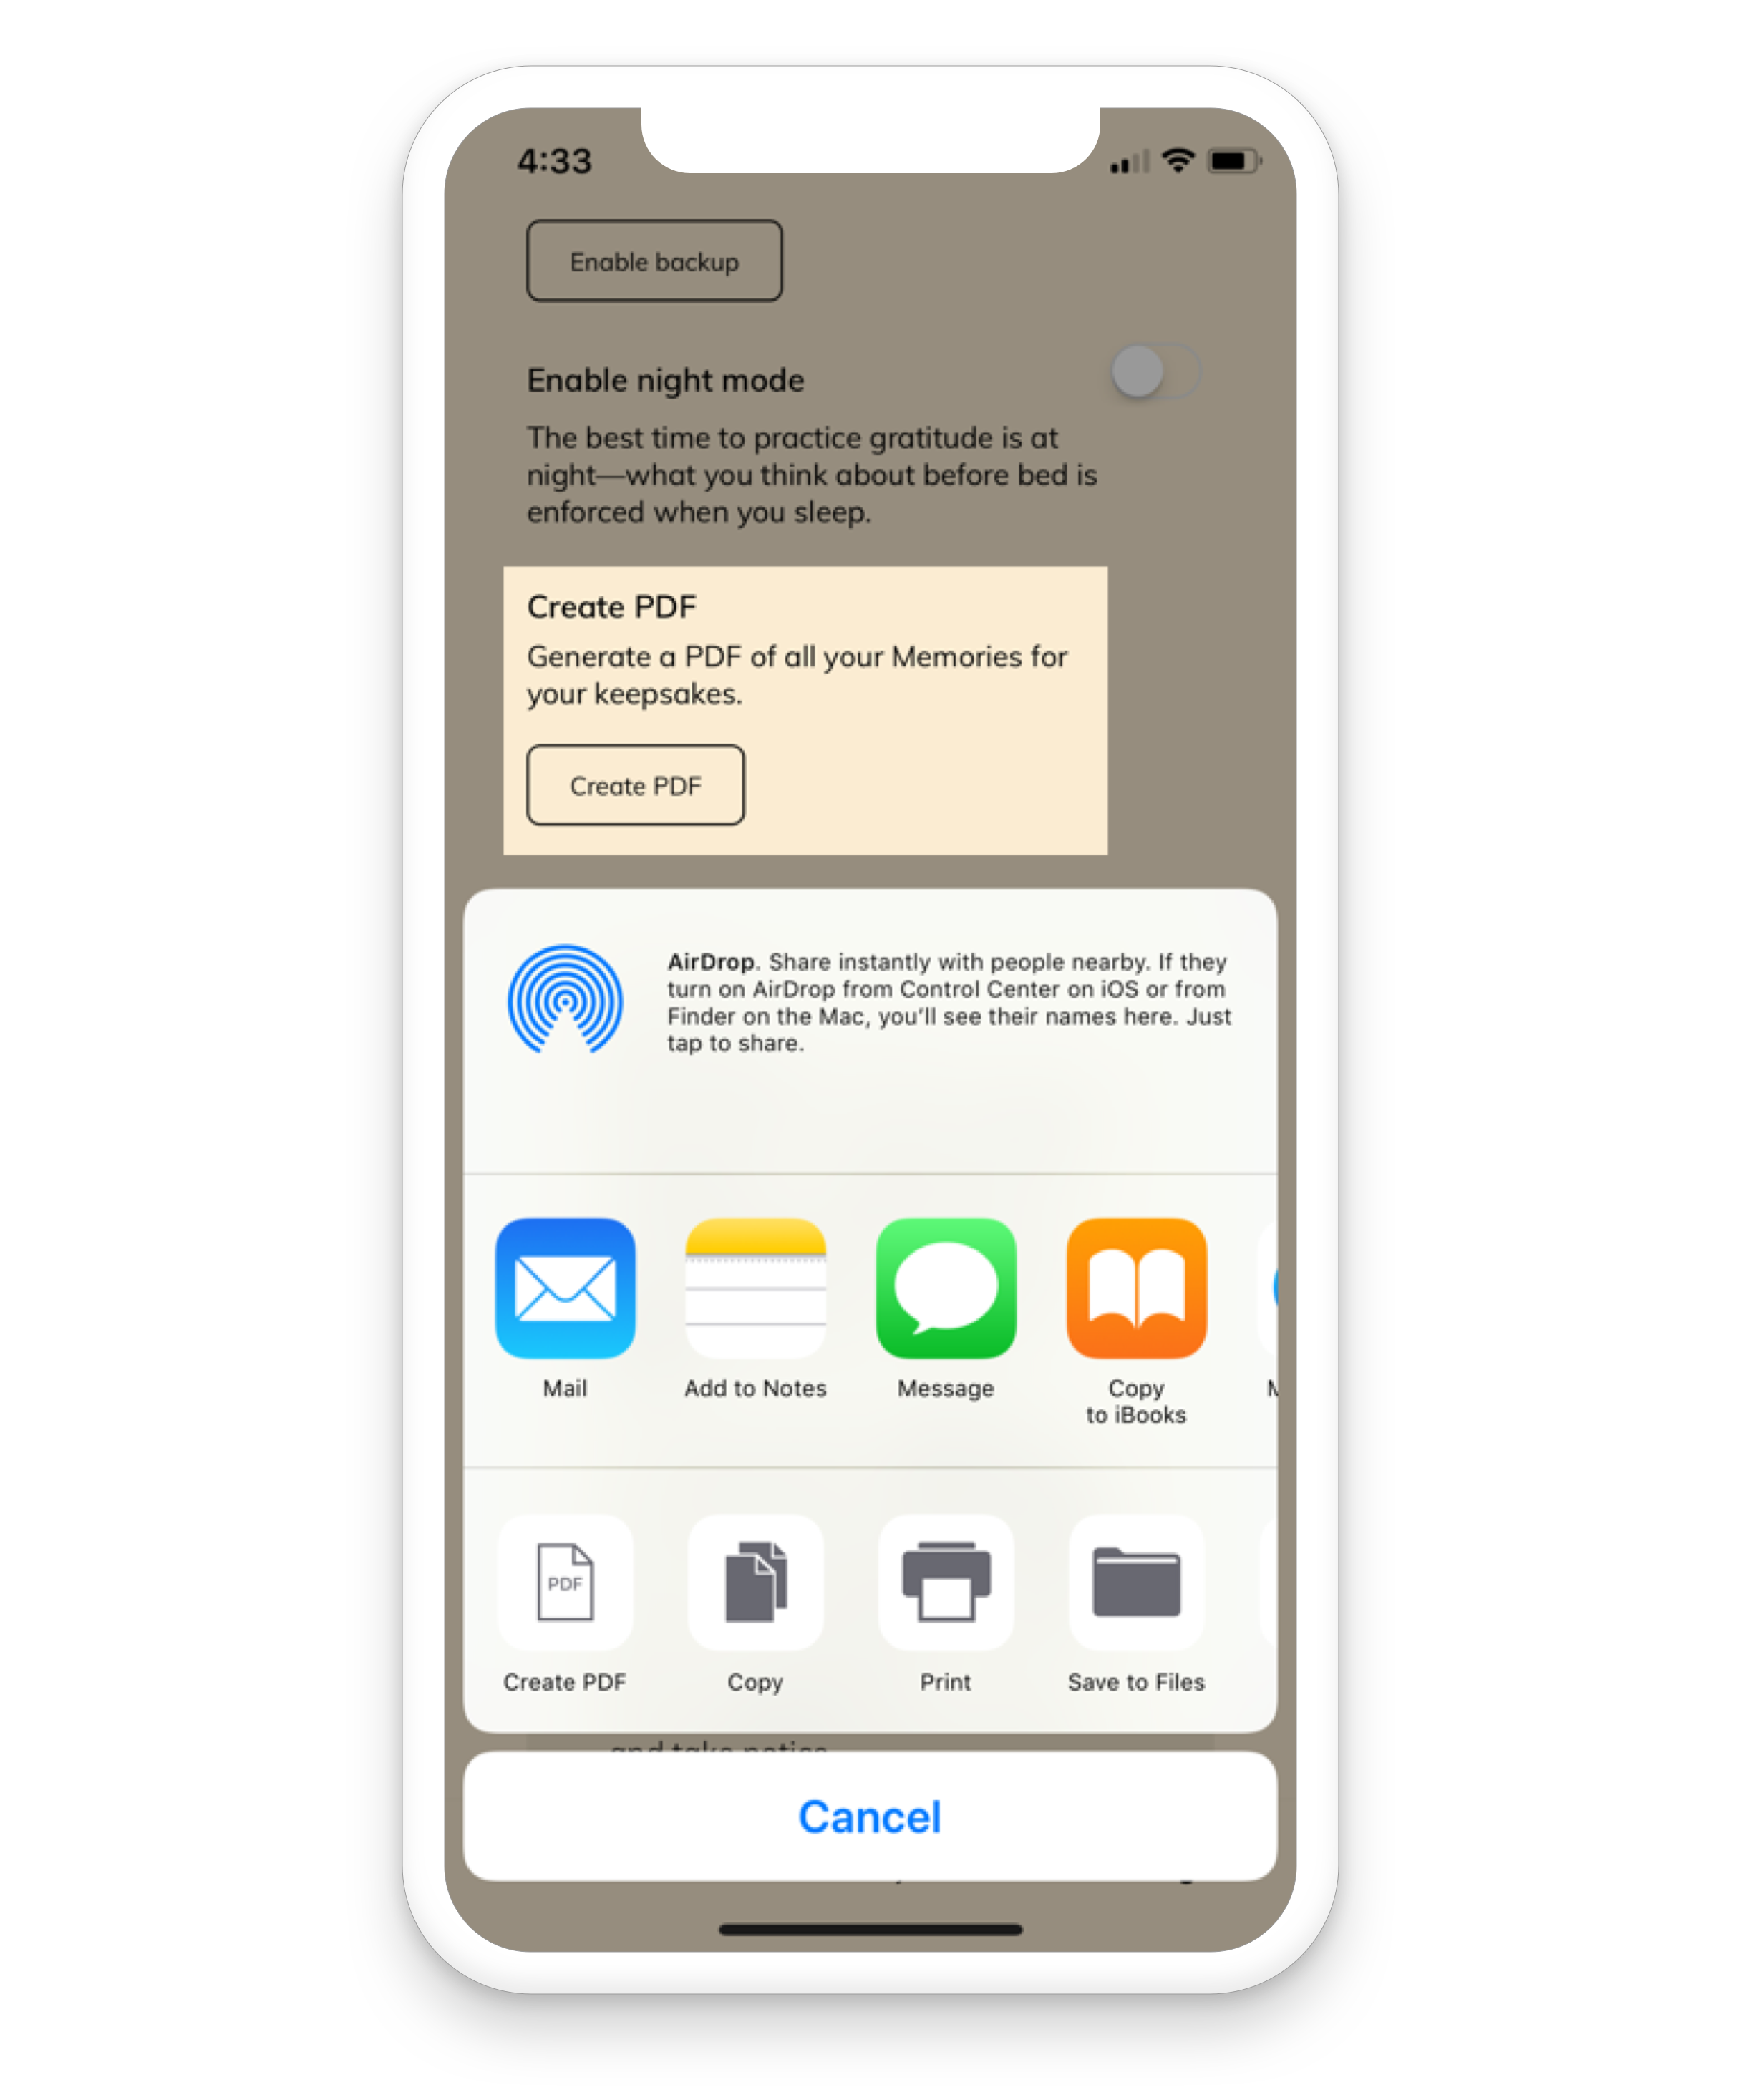 Create a PDF - Instantly generate a PDF of all your Memories. Email it to yourself, save it to your device, or print it out. 🗒️